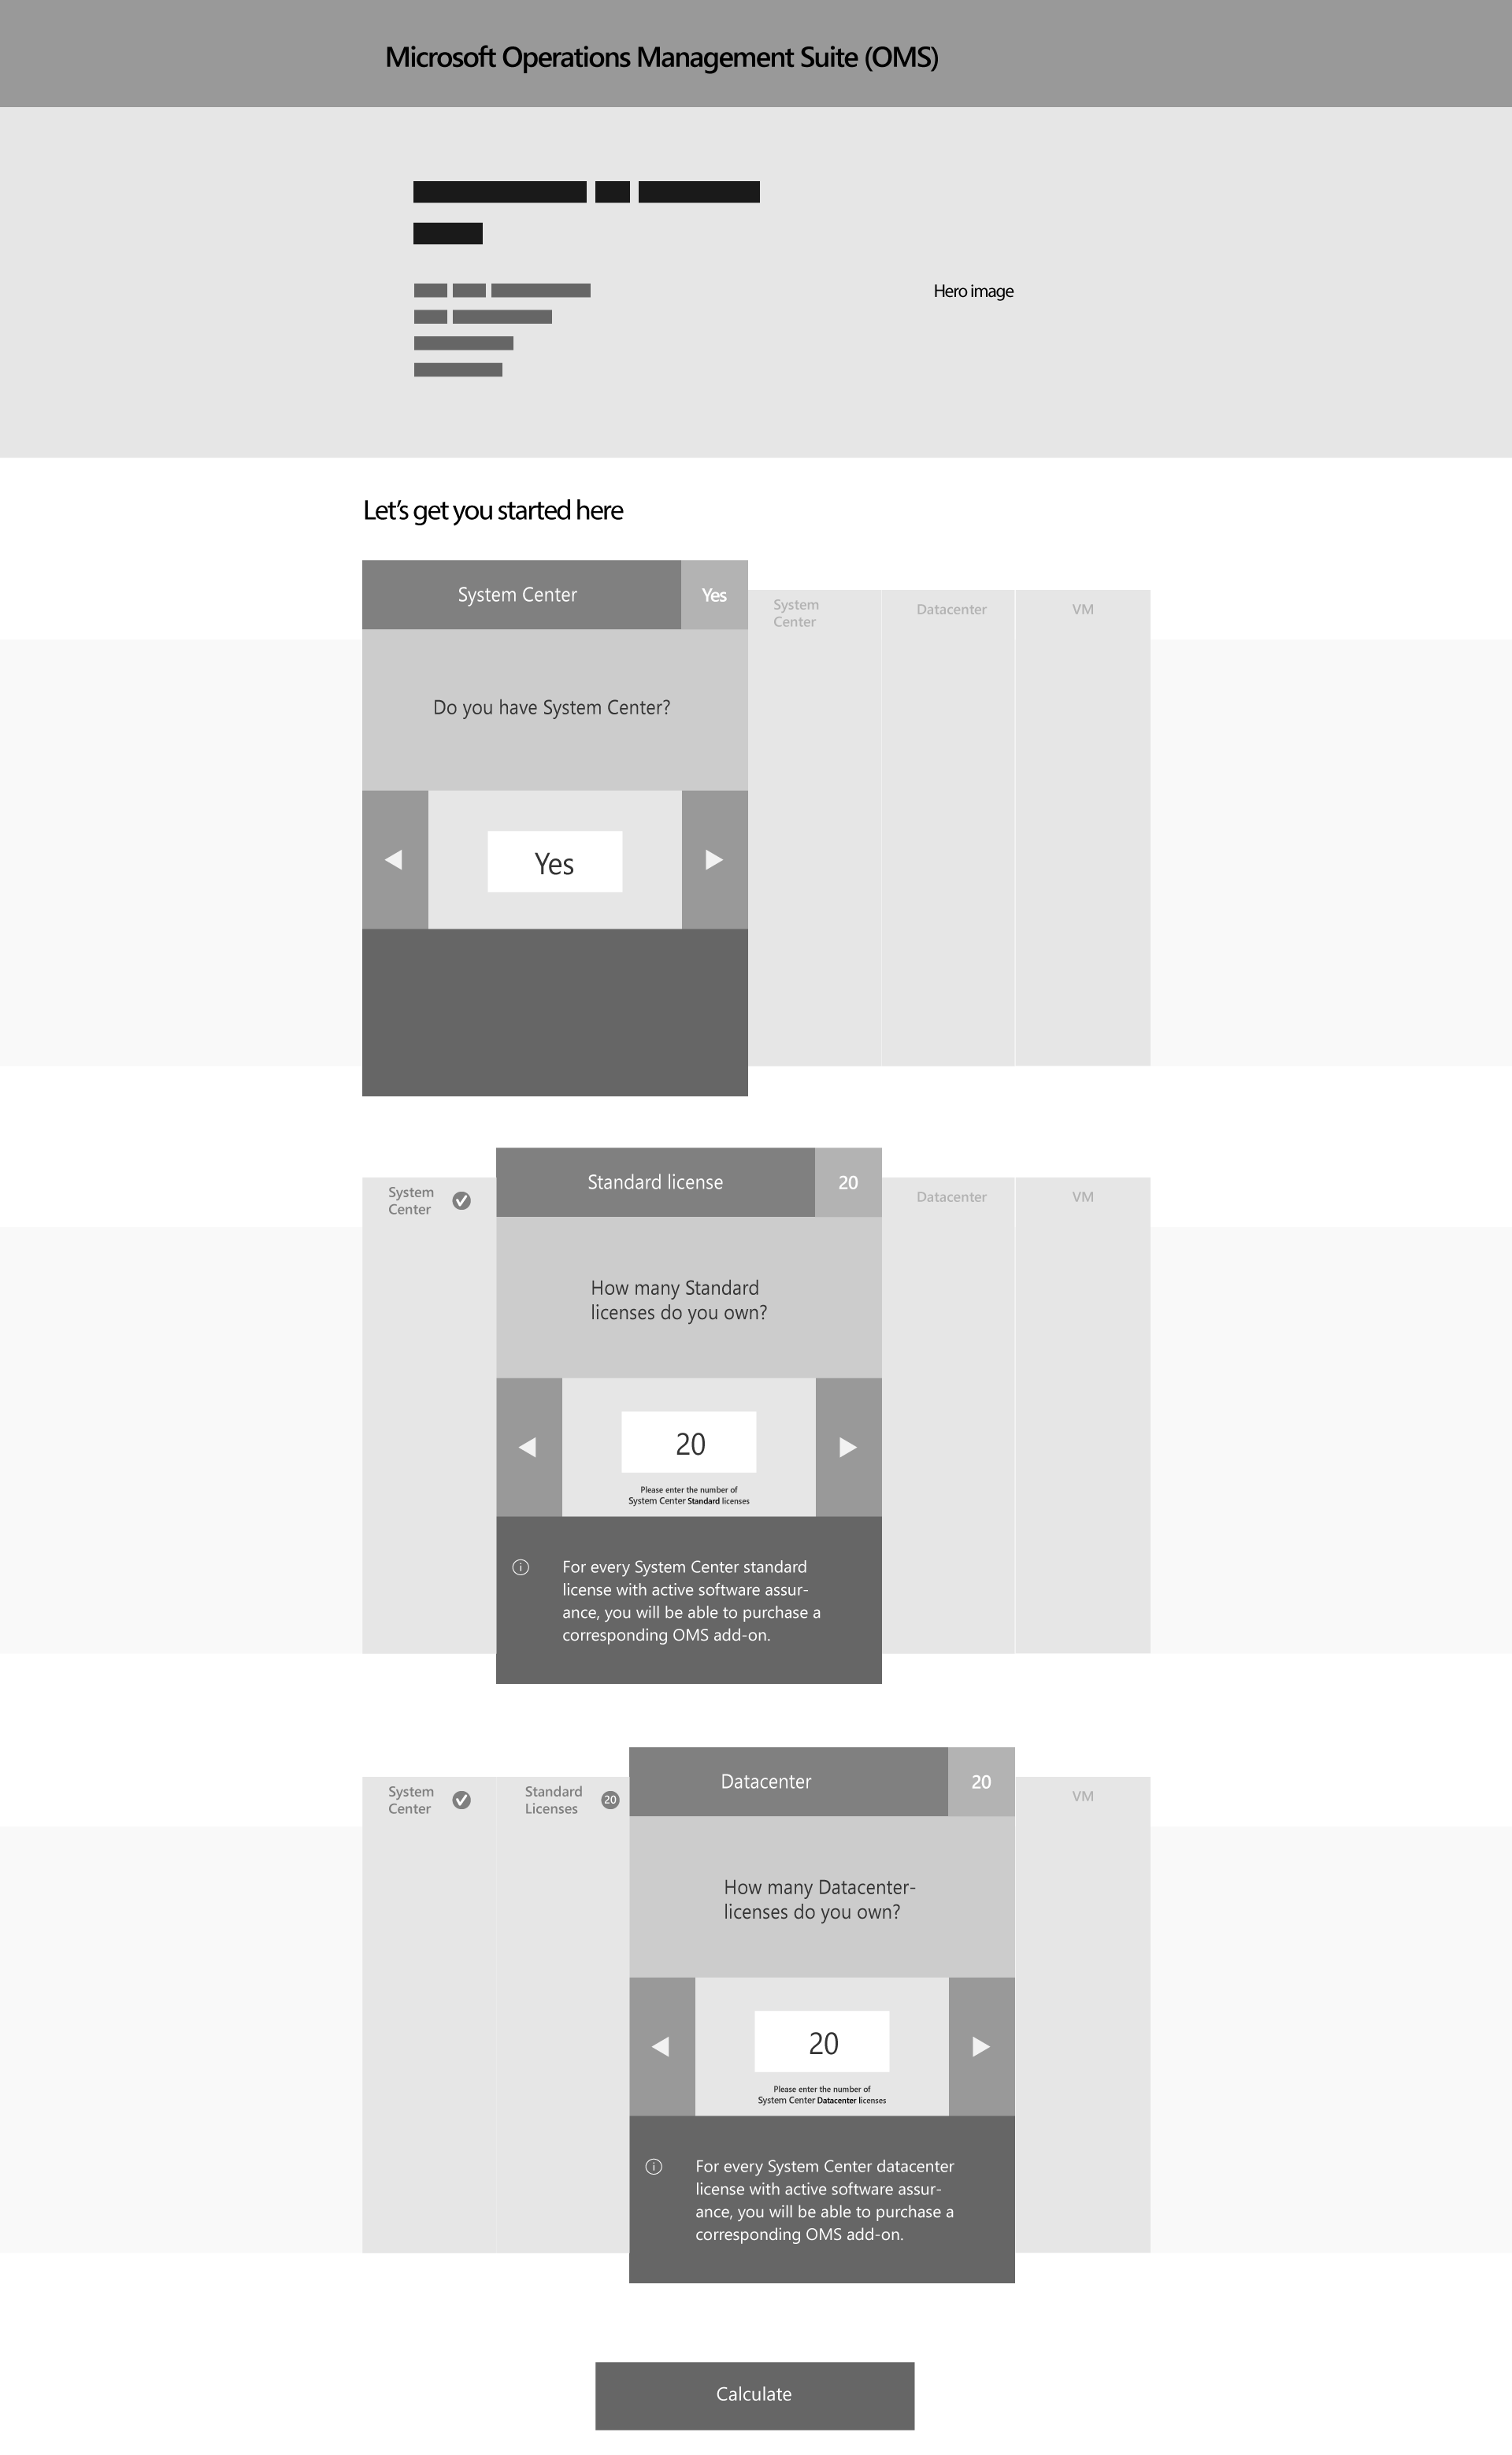 Wireframe 1.2 - Visual variation of display of questionnaire and input fields.